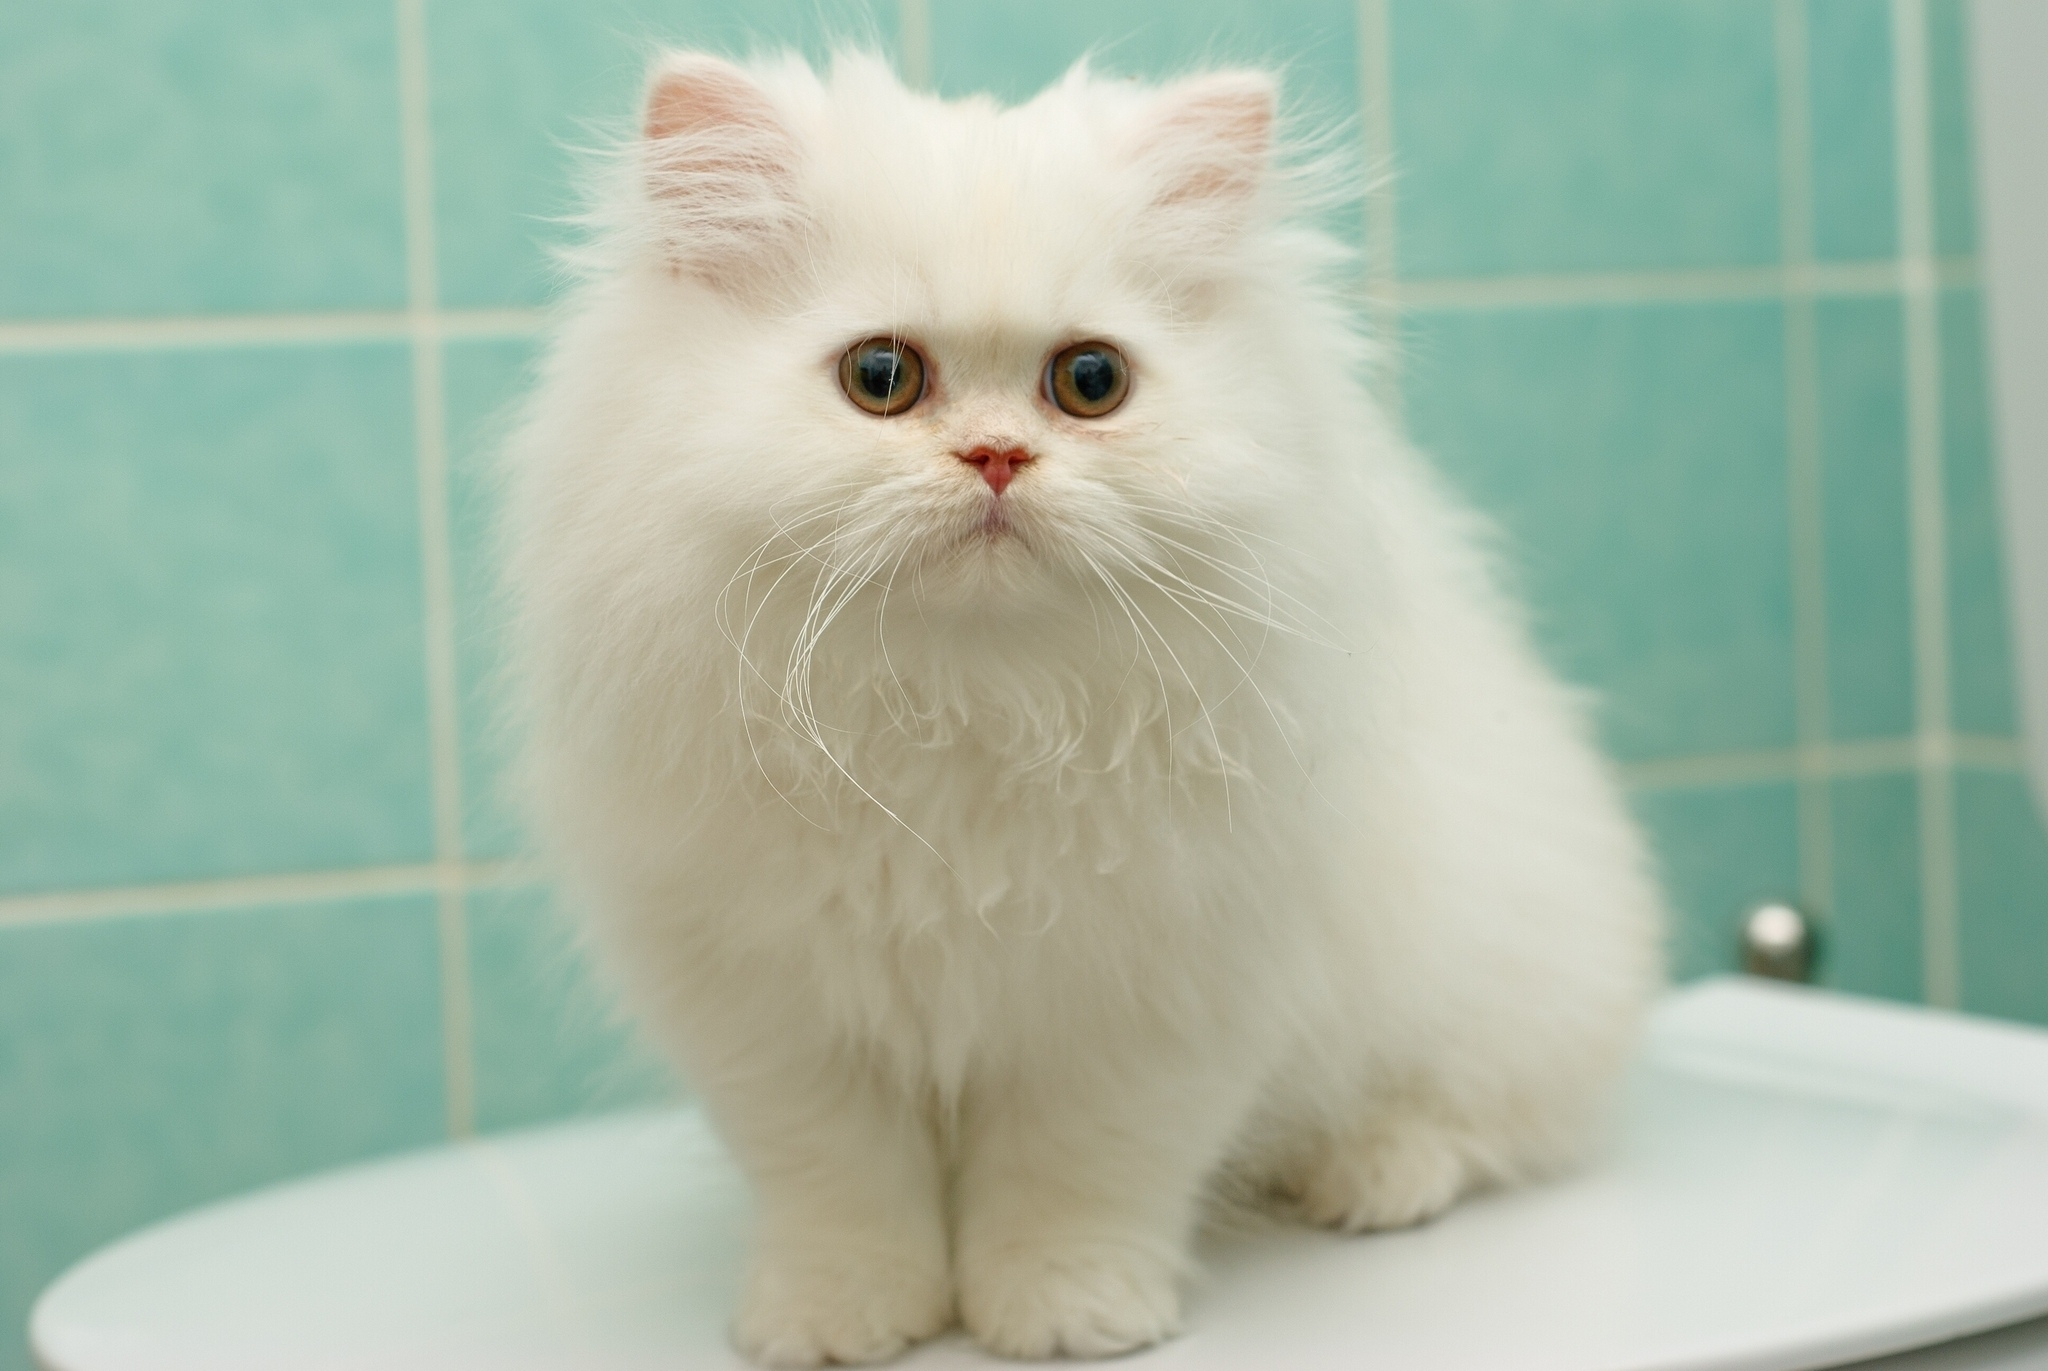 Kitten white fluffy Persian cat cats kittens wallpaper | 2048x1371 ...